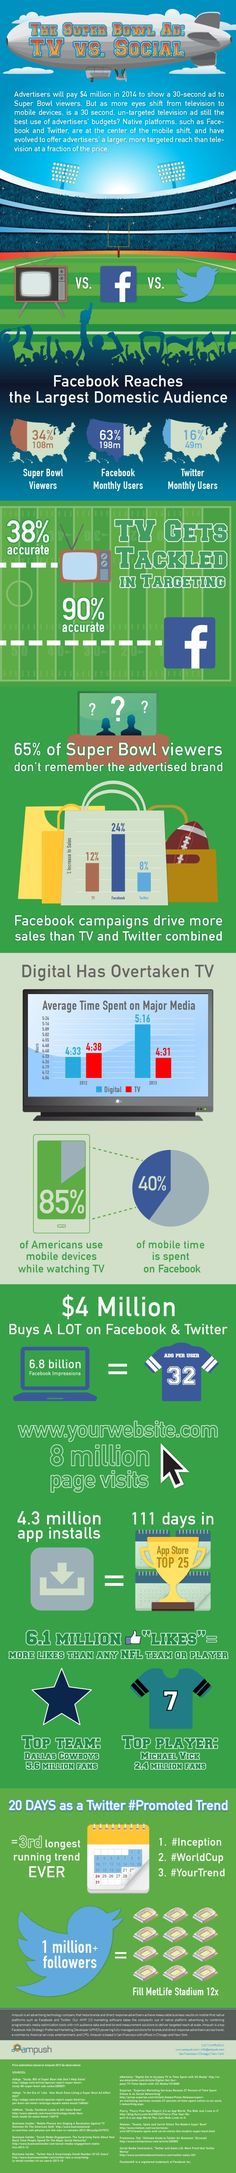 INFOGRAPHIC: Super Bowl TV Ads Get The Glory, But Is Facebook A Better Buy? - AllFacebook